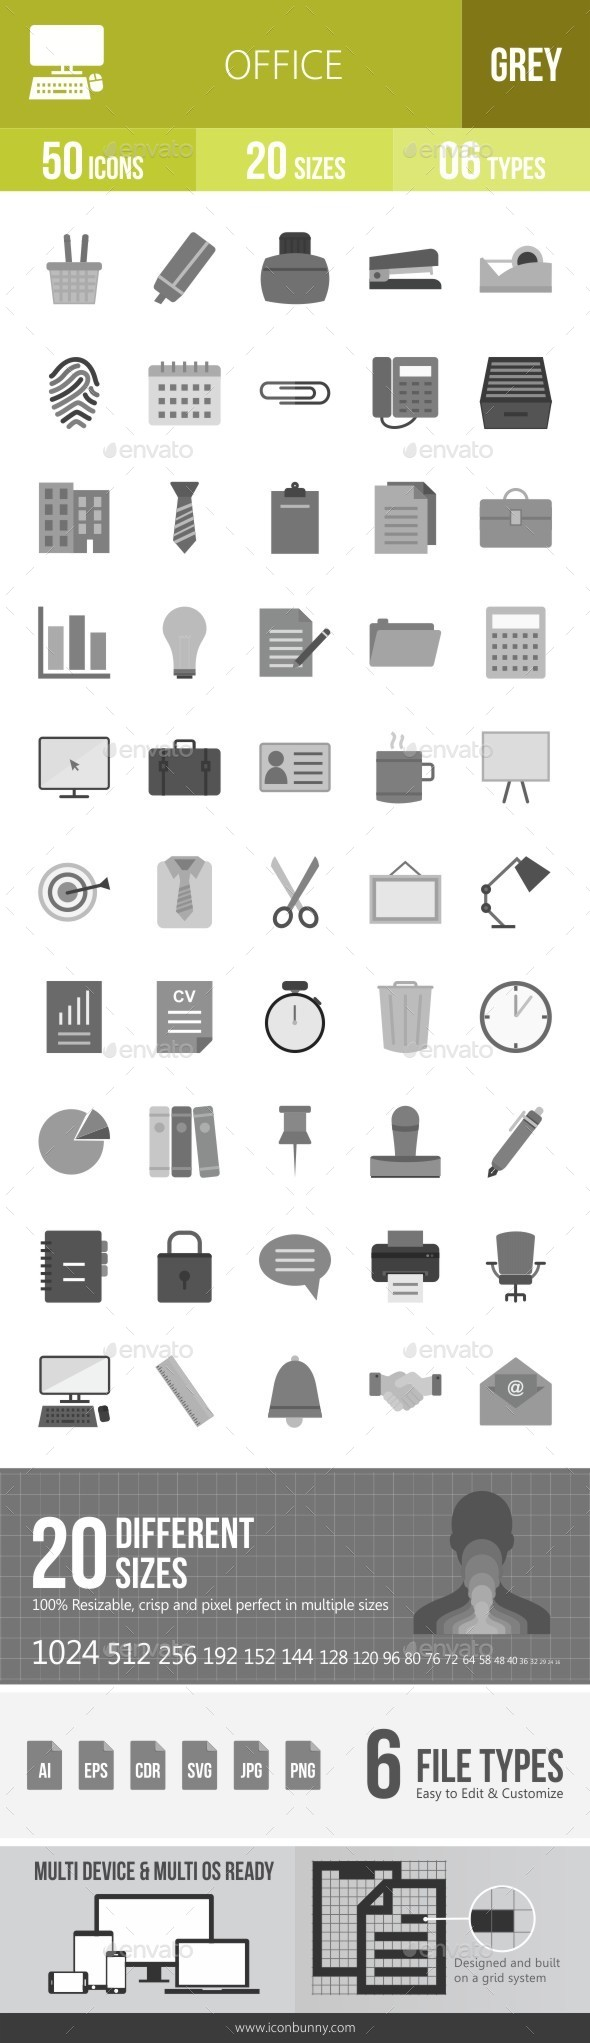 Office Greyscale Icons - Icons